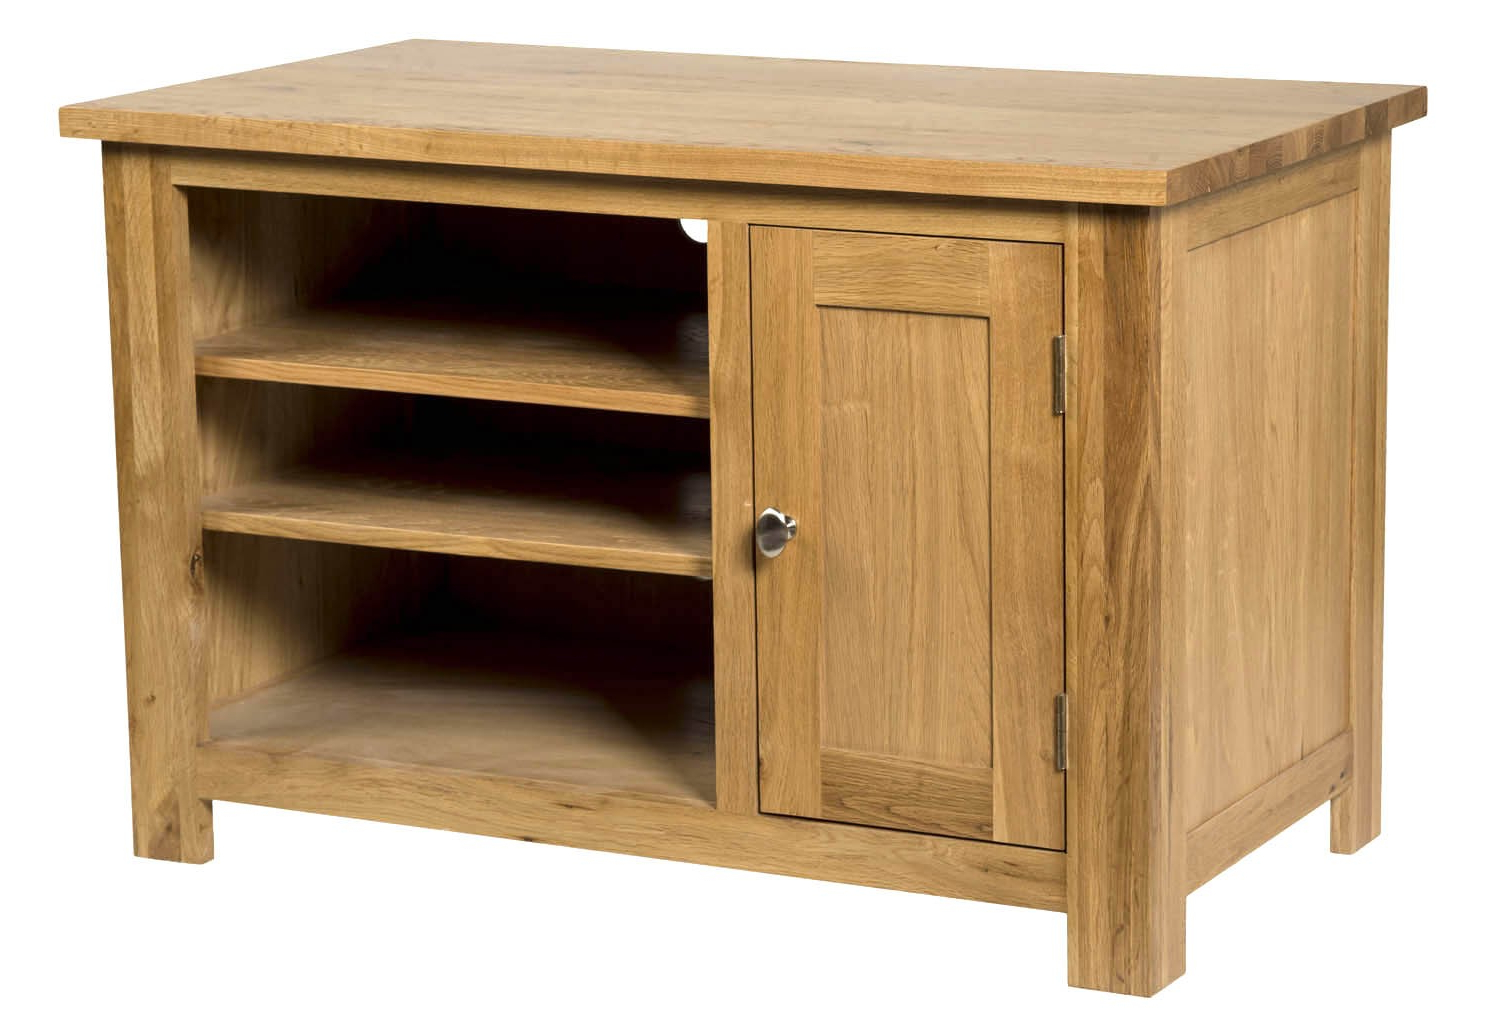 Preferred Waverly Oak Small Compact Tv Stand With Cabinet Storage (Gallery 19 of 20)